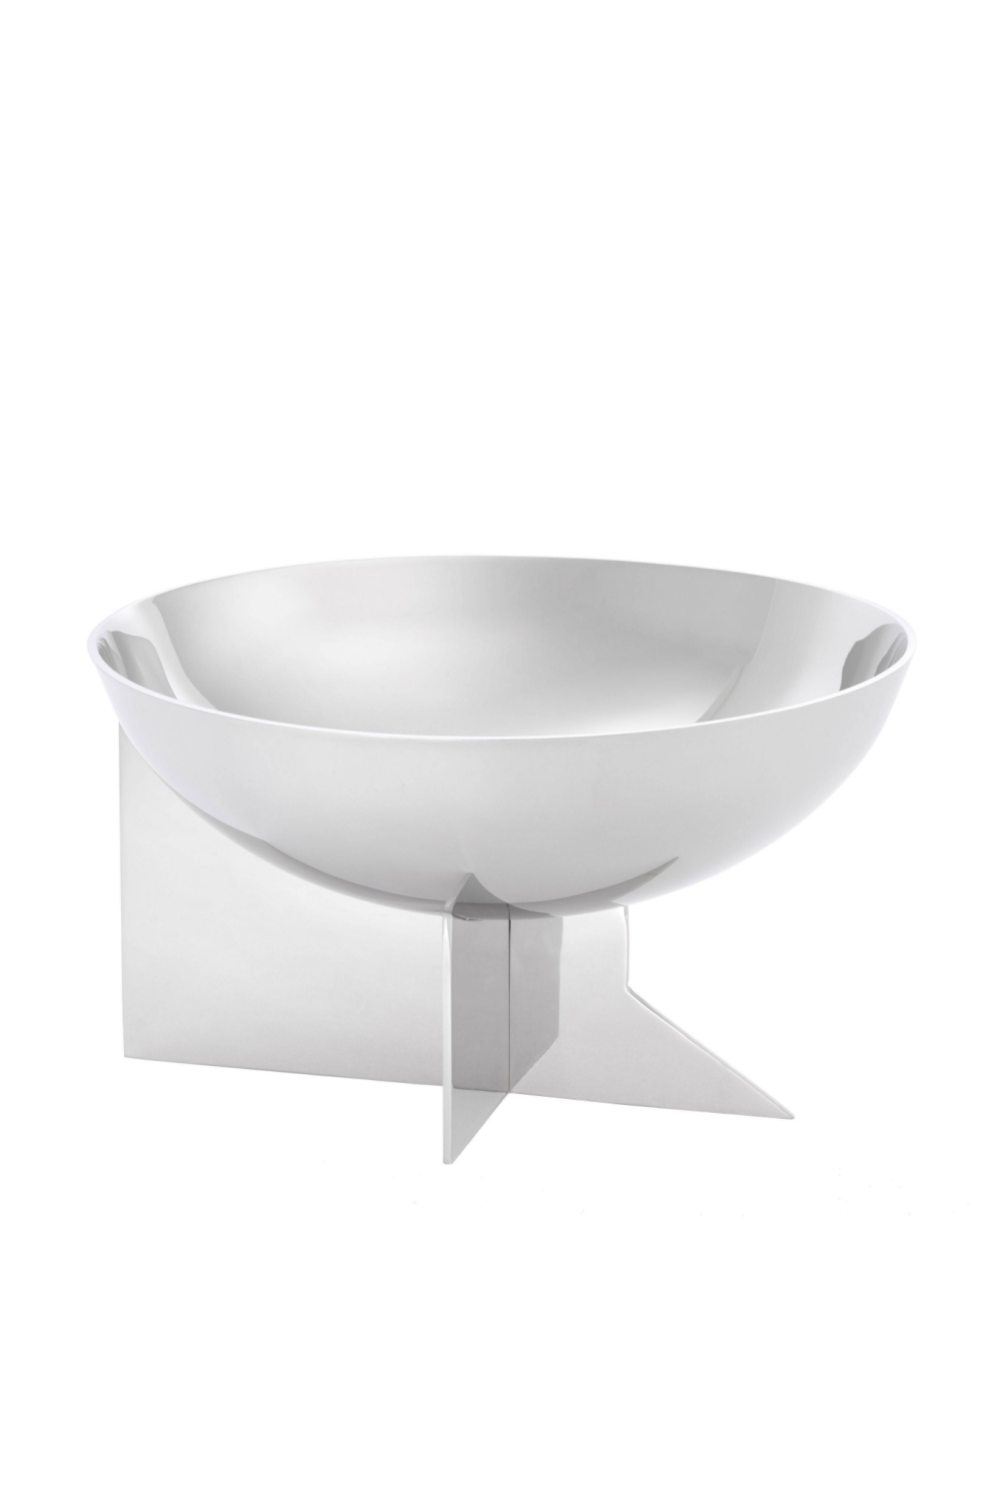 Silver Decorative Bowl | Eichholtz Atalante | OROA Modern & Luxury Furniture